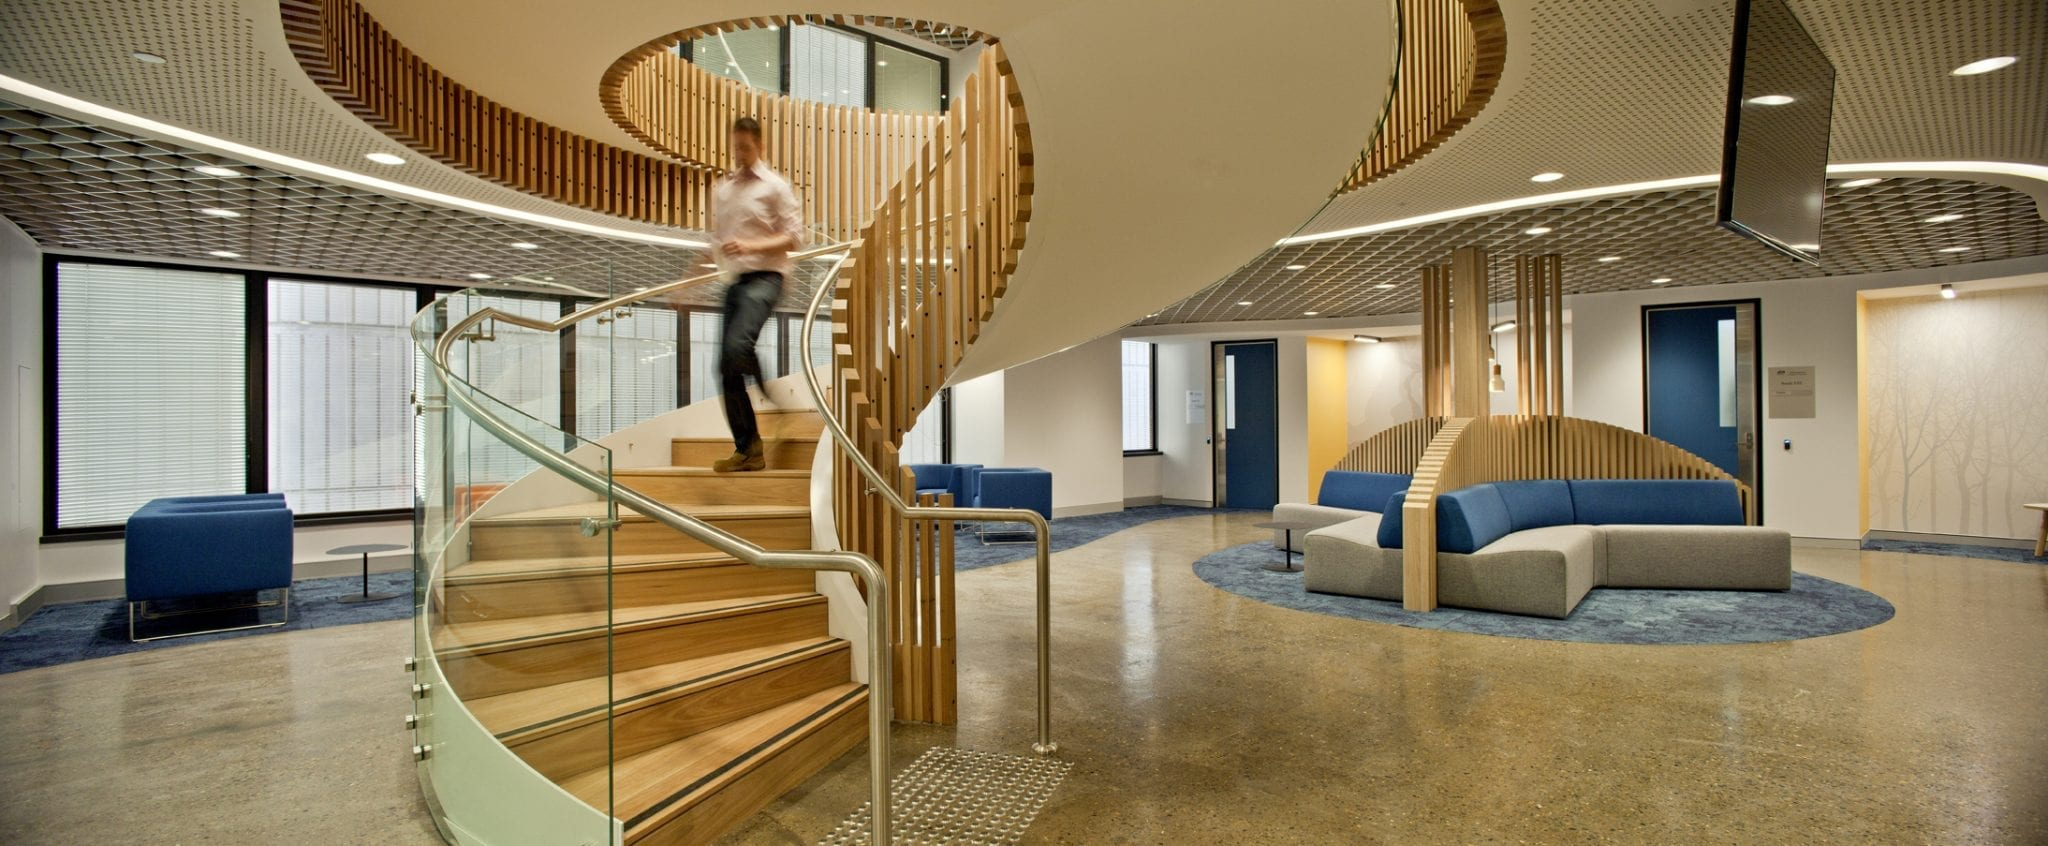 Tribunal Staircase and Offices Furniture